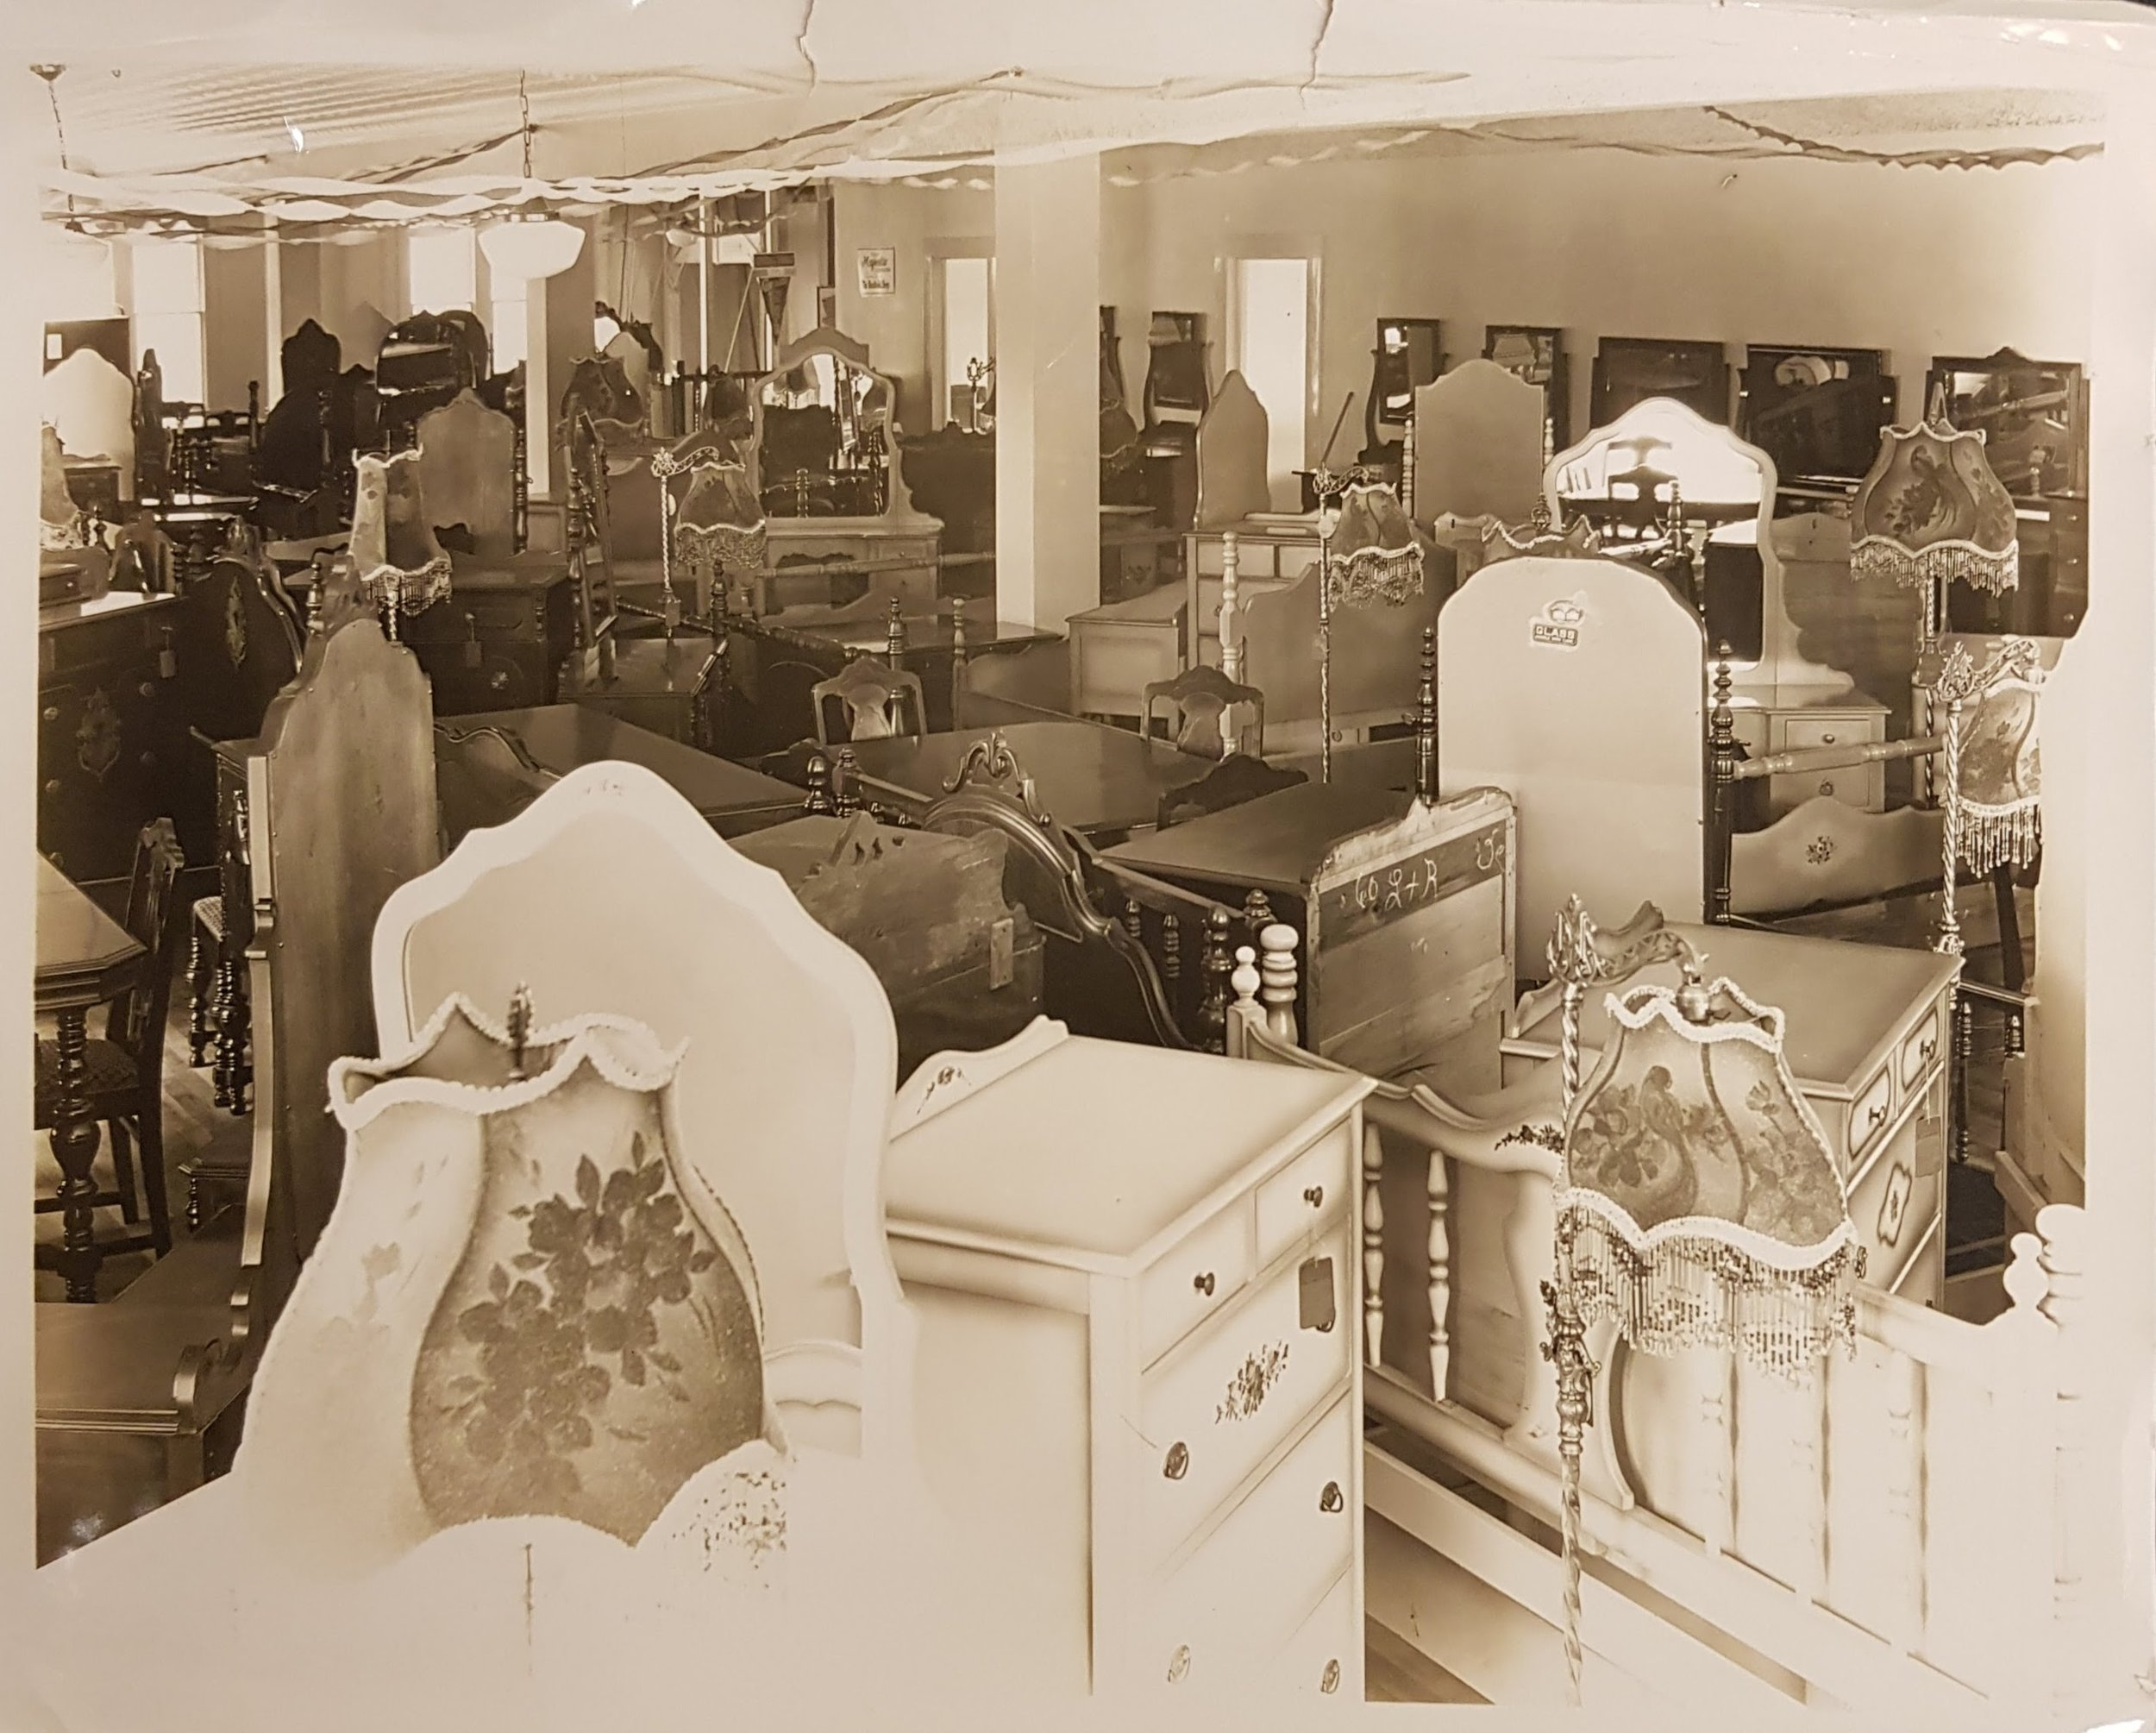 Grand Opening of C.J. Ludewig Furniture Co in our current building, 1929.